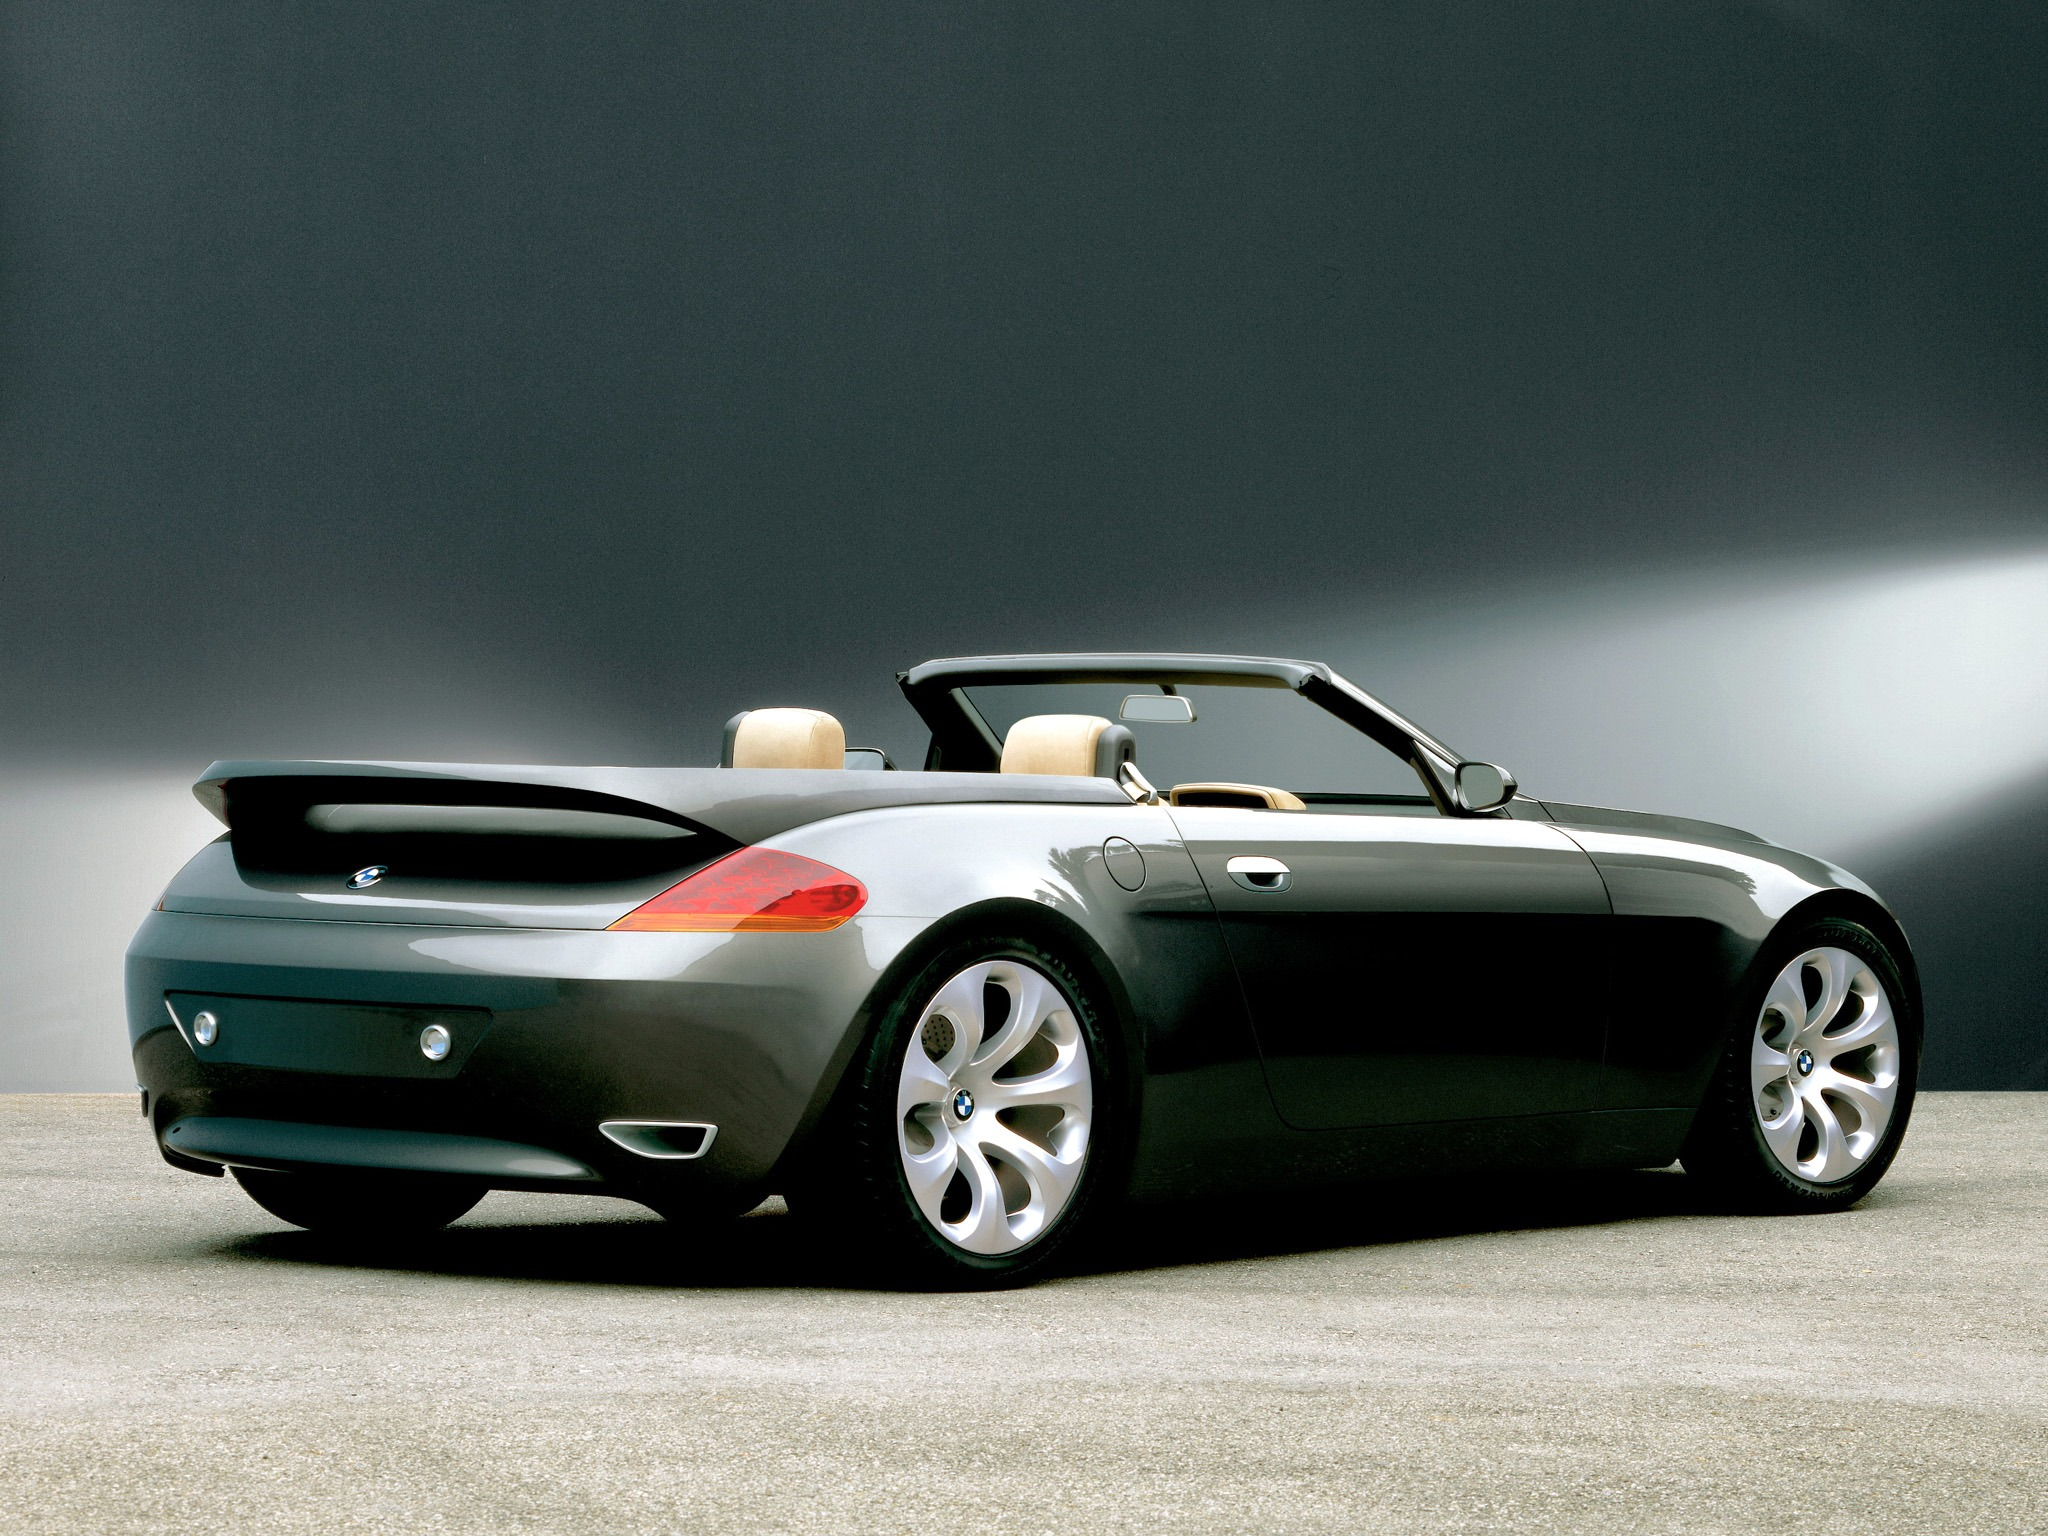 Bmw Z9 Convertible 2000 Old Concept Cars